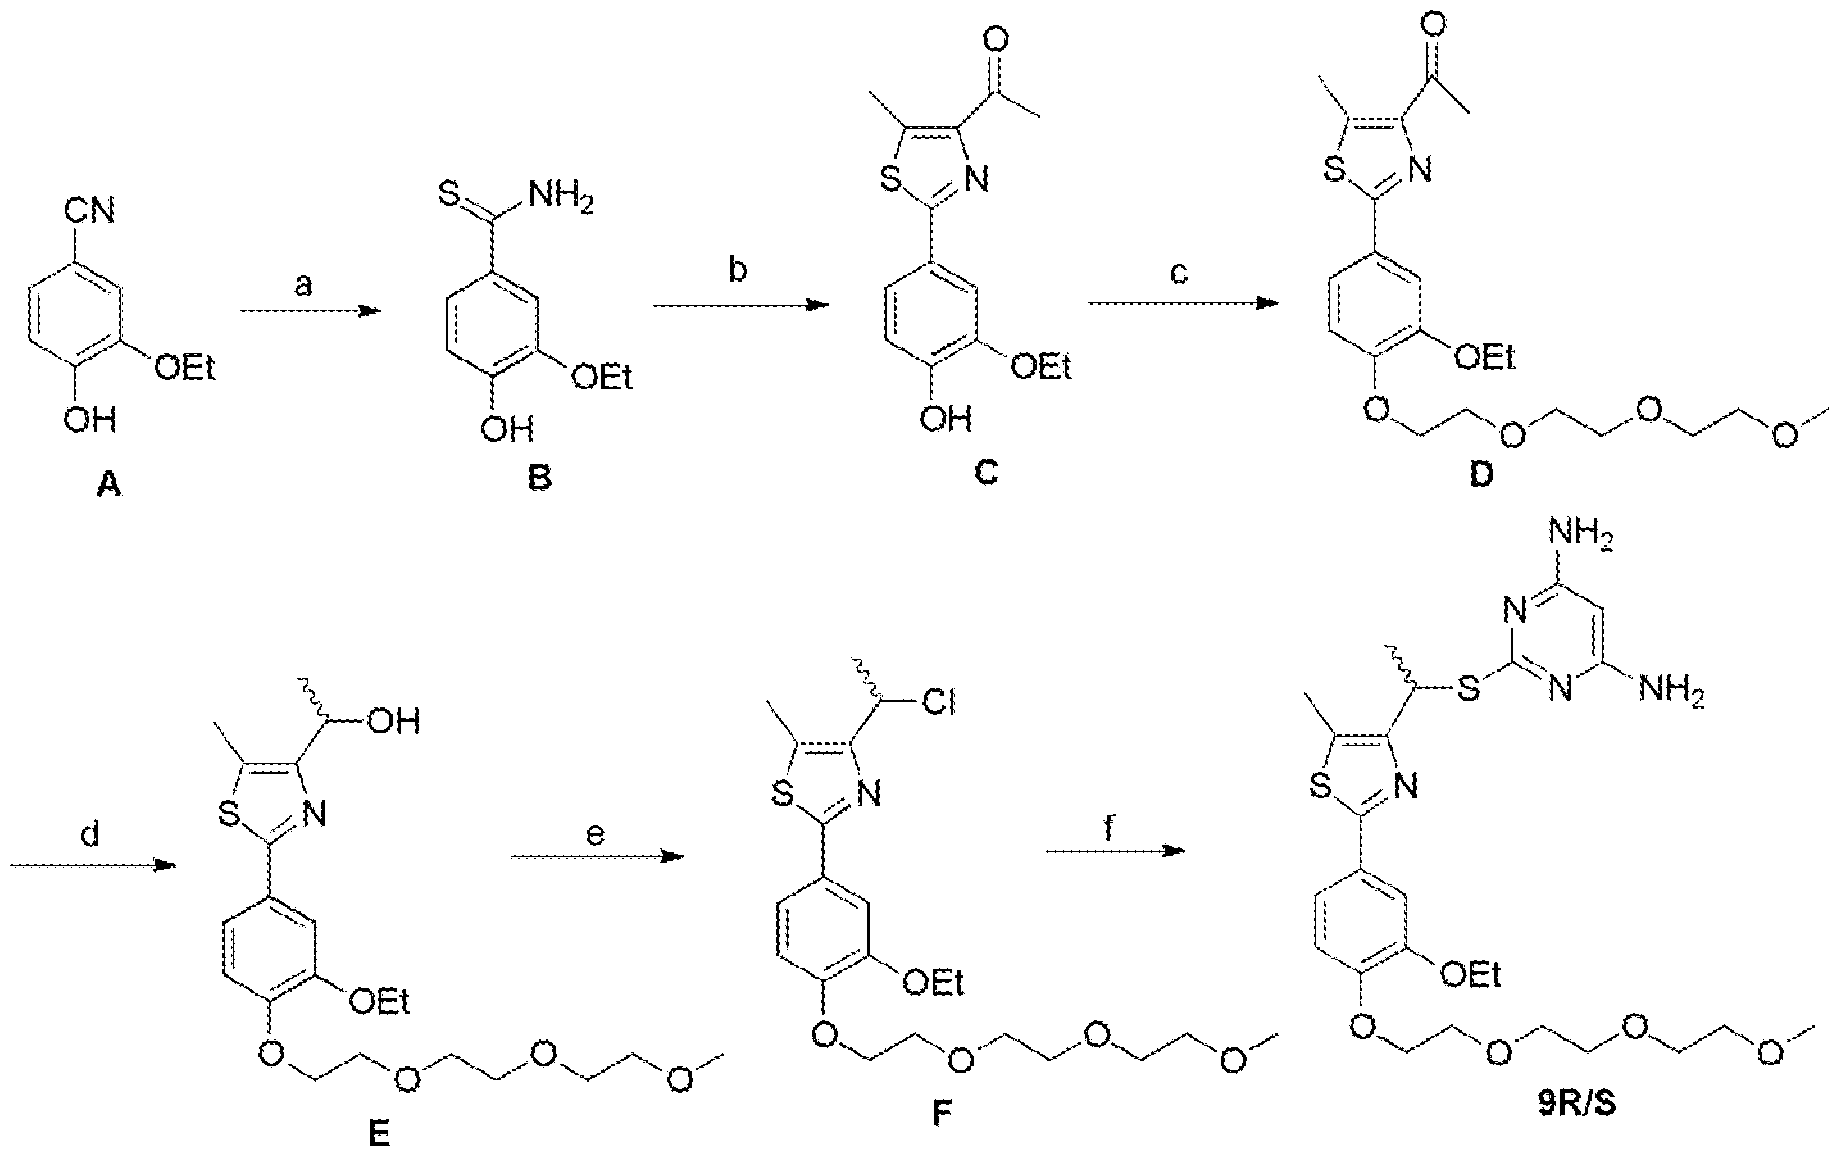 Wo2015023776a2 Deoxycytidine Kinase Inhibitors Google Patents Computer Circuit Board Stock Image T356 0546 Science Photo Library Figure Imgf000106 0001